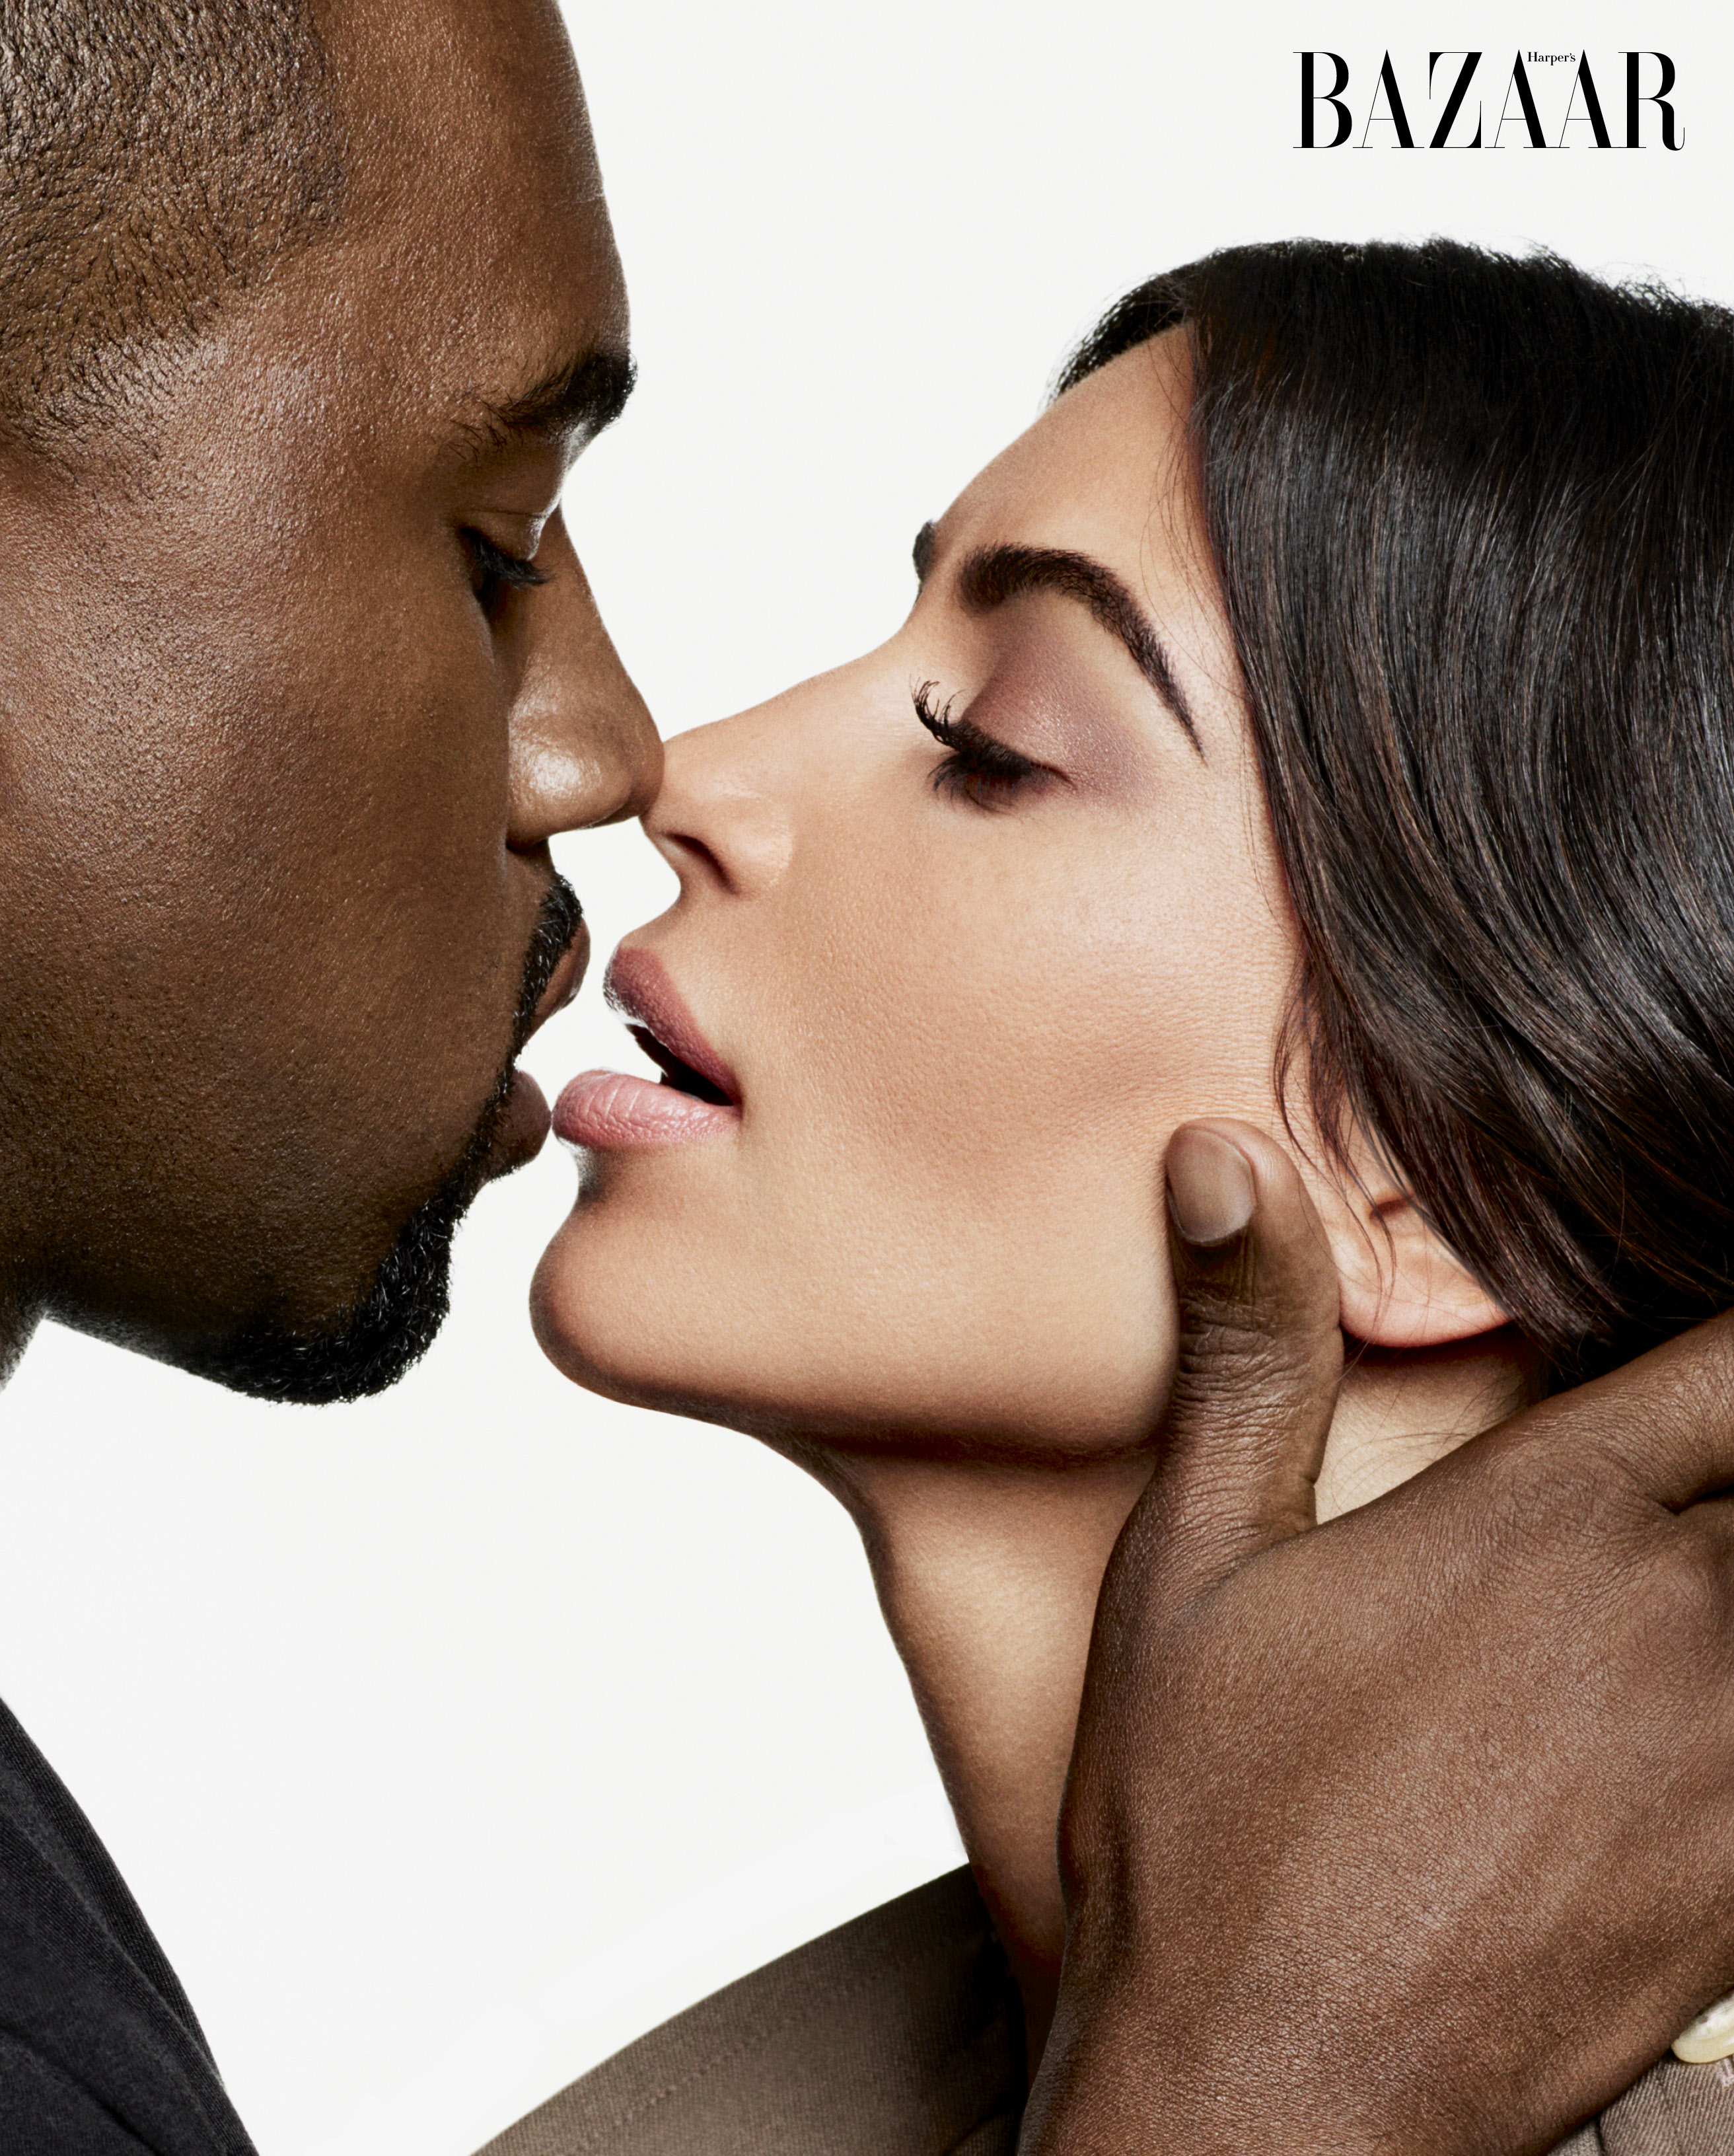 Kim Kardashian and Kanye West for Harper's Bazaar